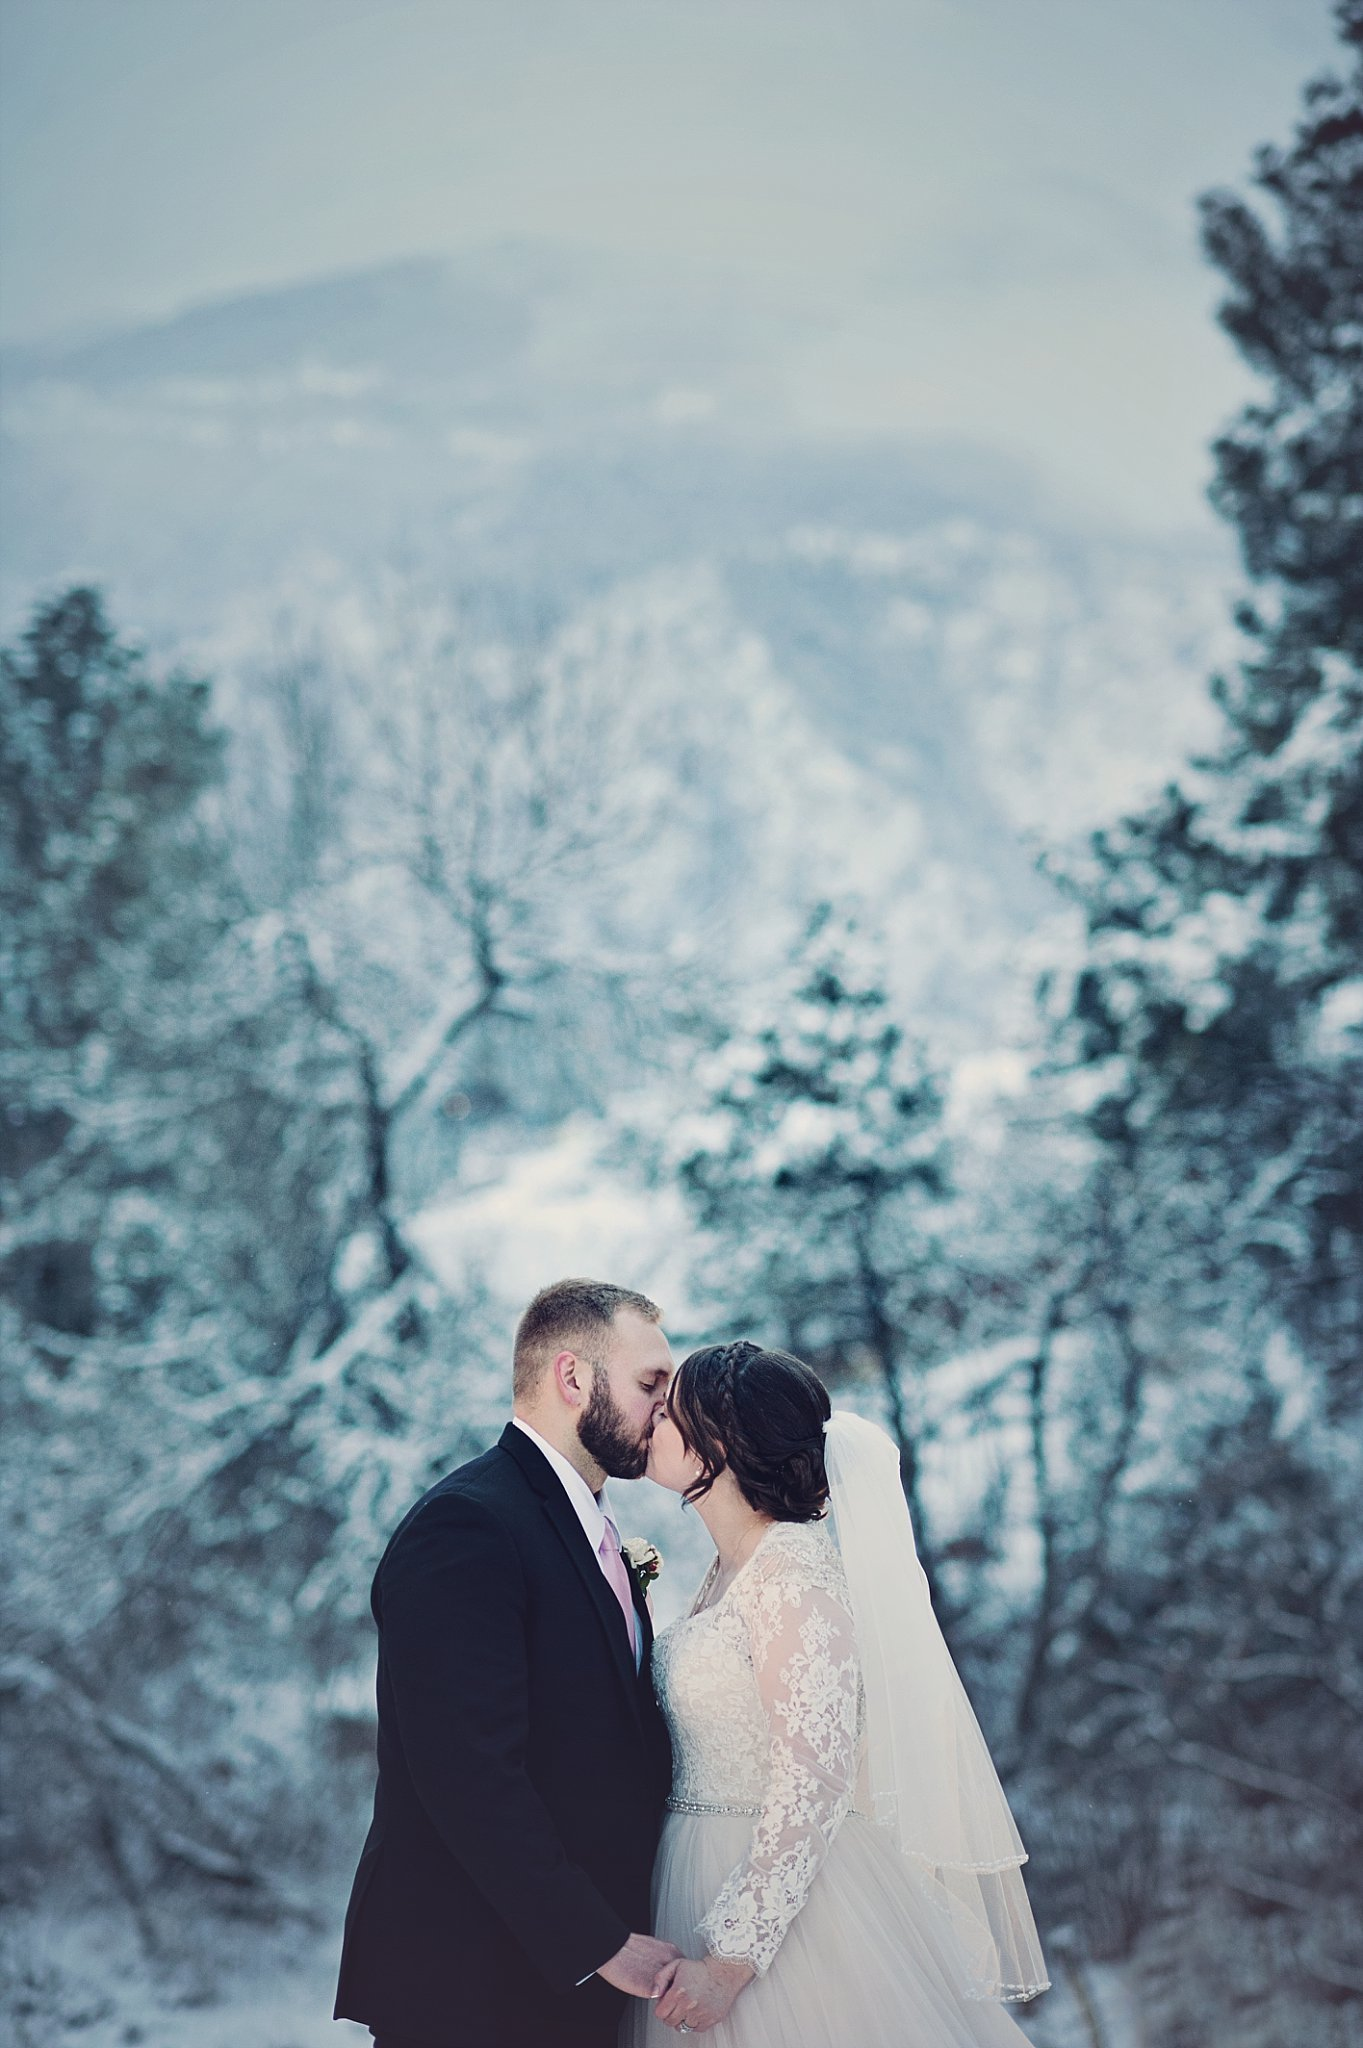 Elizabeth Ann Photography, Denver Wedding Photographer, Fine Art Wedding_2466